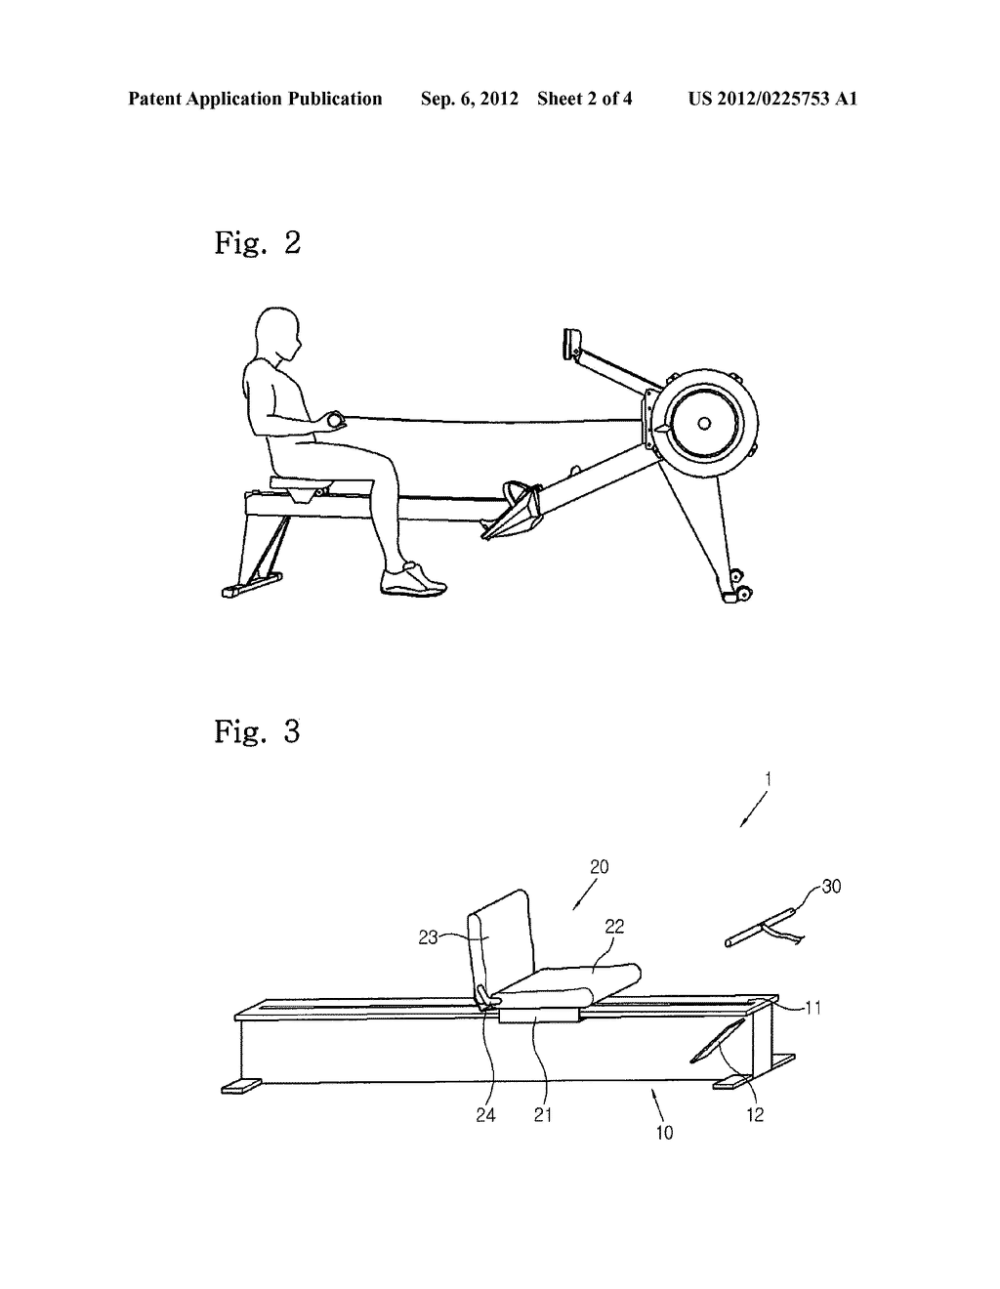 medium resolution of rowing machine exercise assisting device diagram schematic and image 03